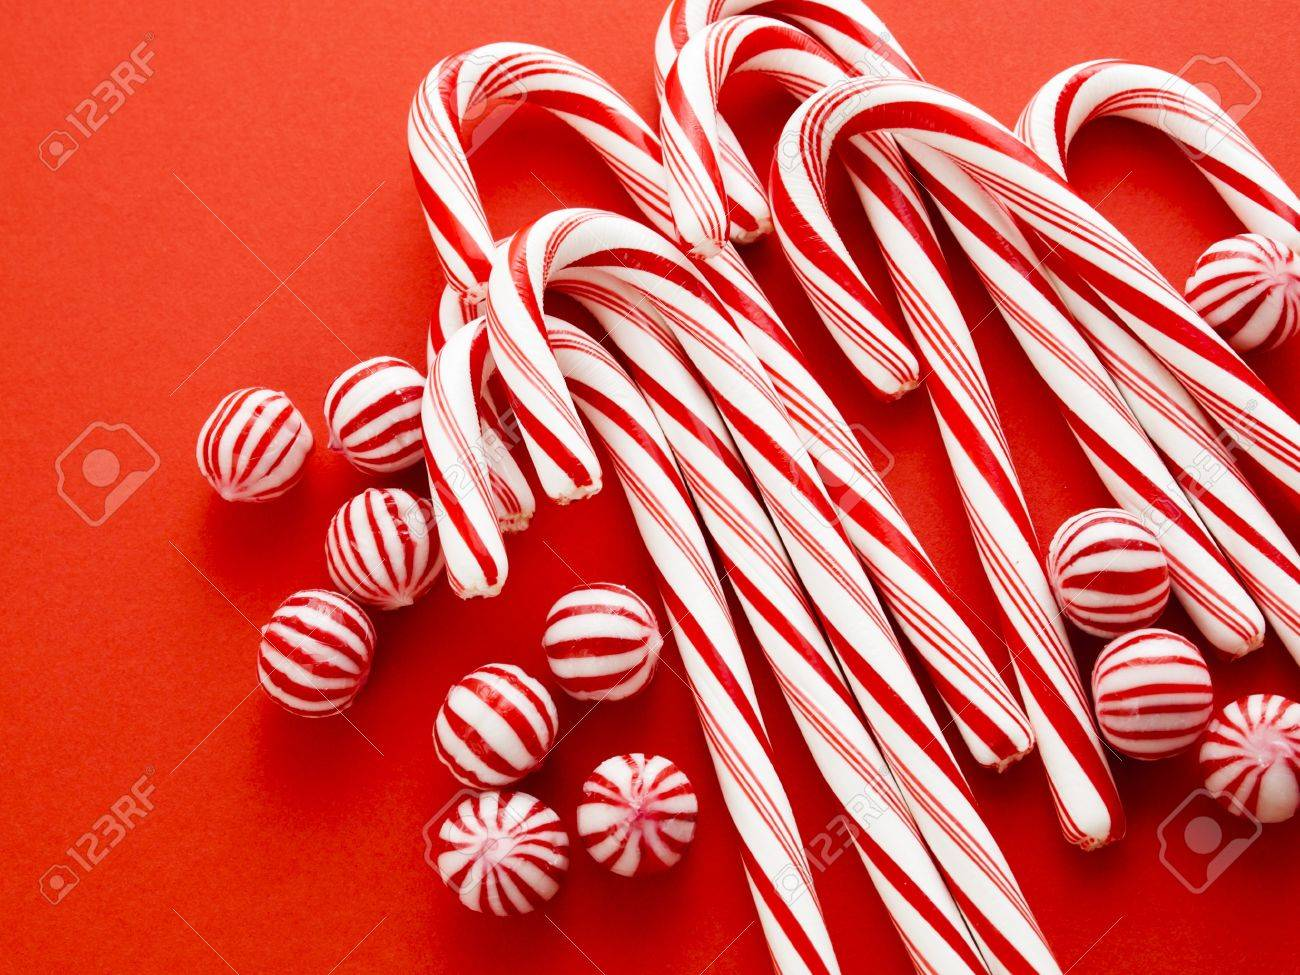 white and red peppermint candy canes on red background stock photo